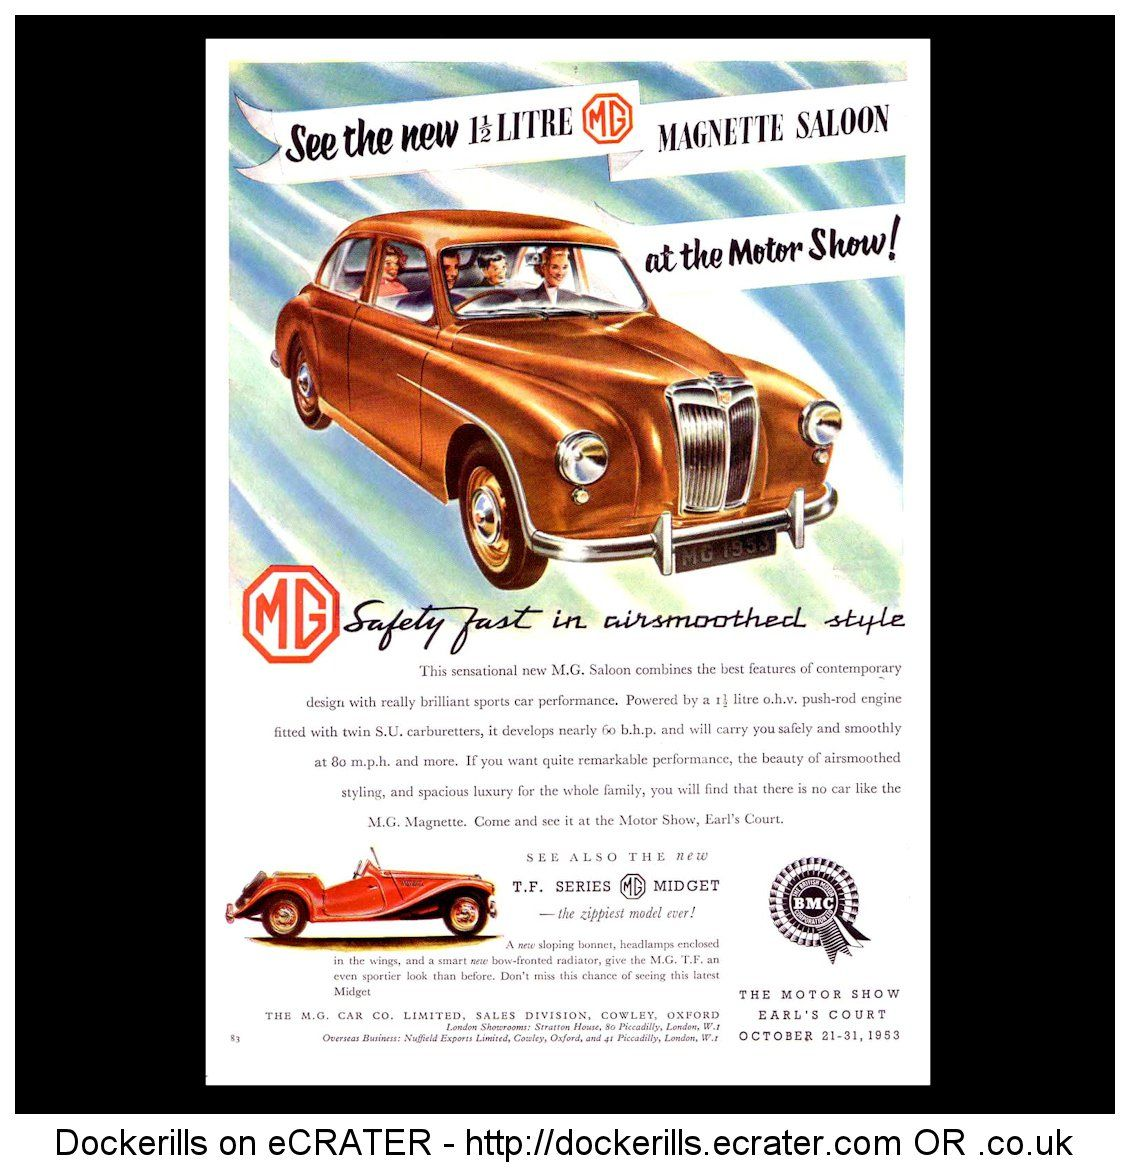 Mg mg magnette 1 5 saloon advert from the autocar magazine october 23rd